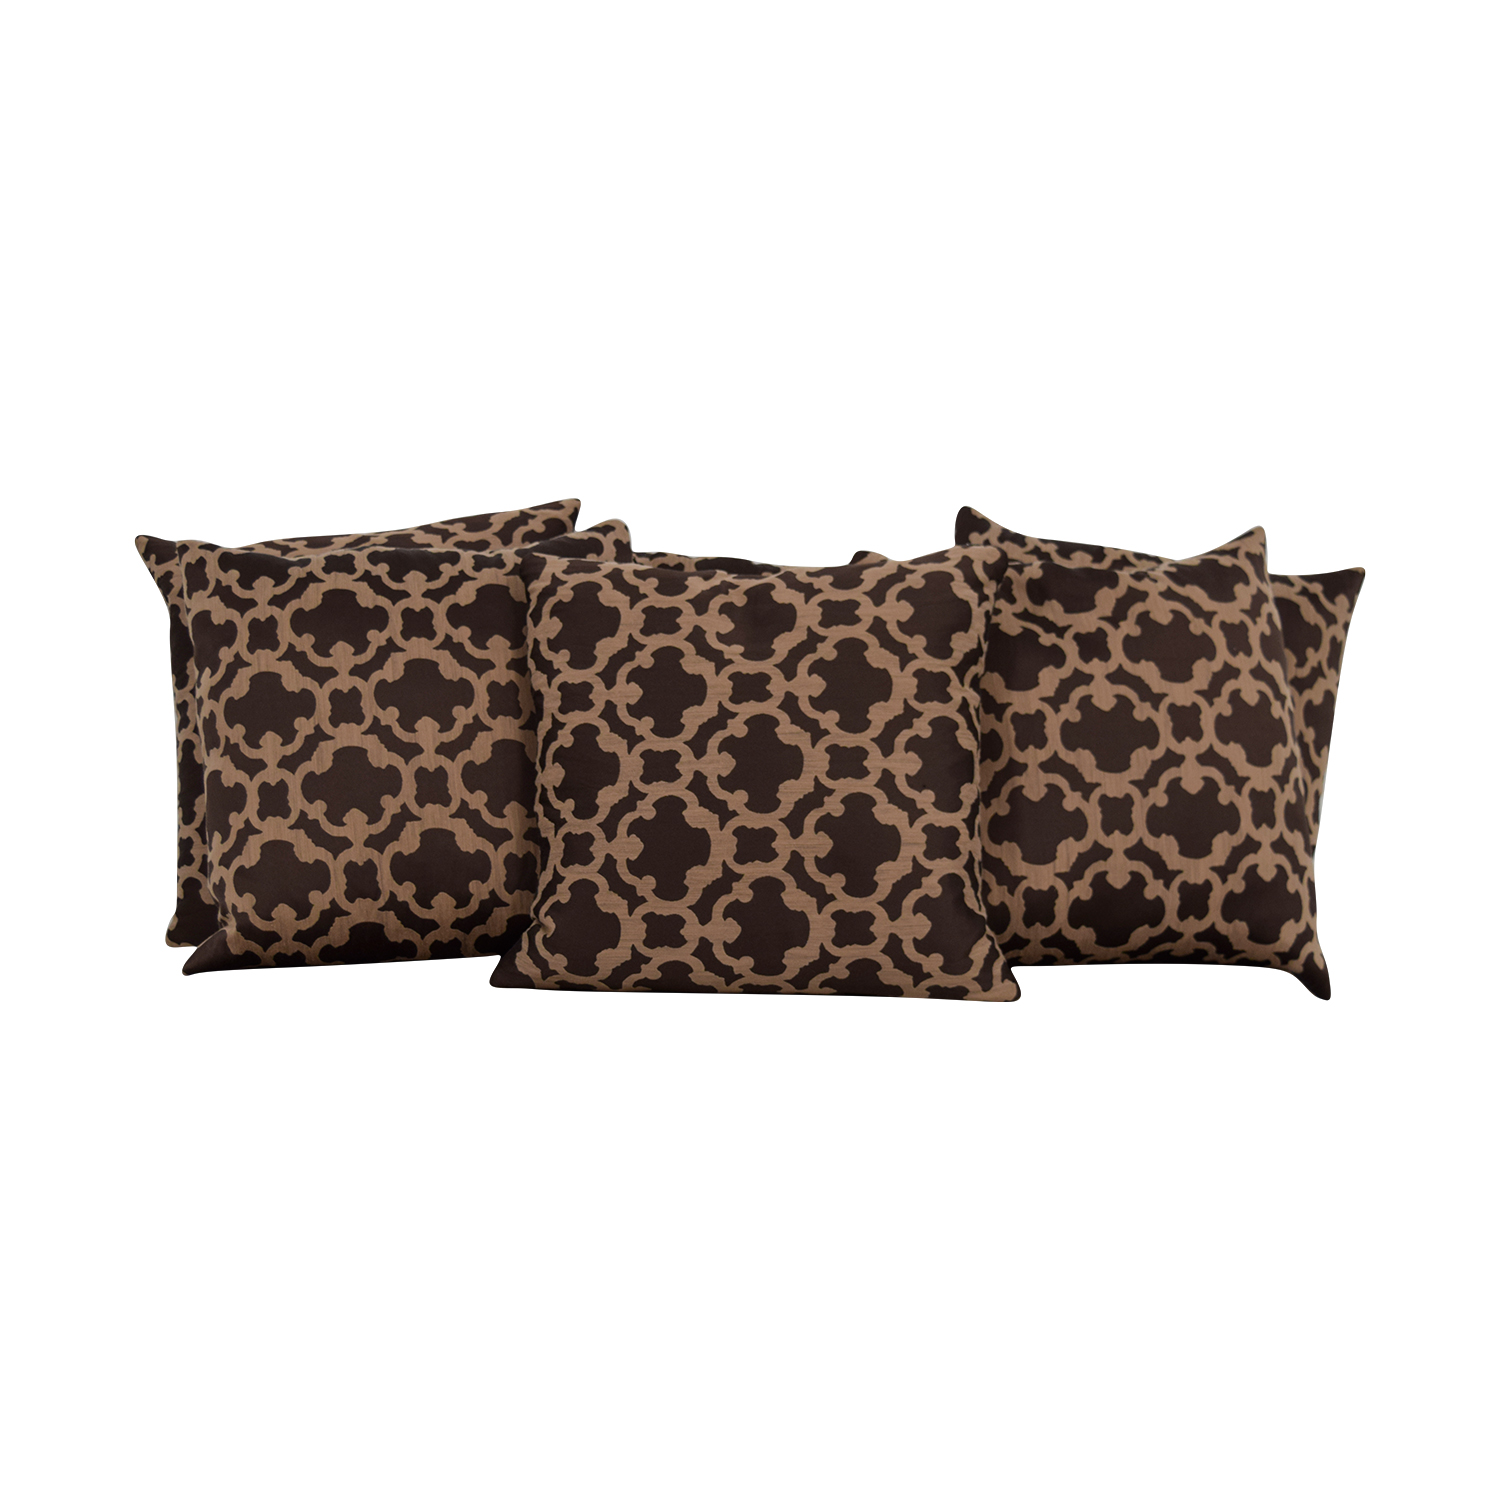 Macys Macys Brown and Beige Throw Pillows for sale